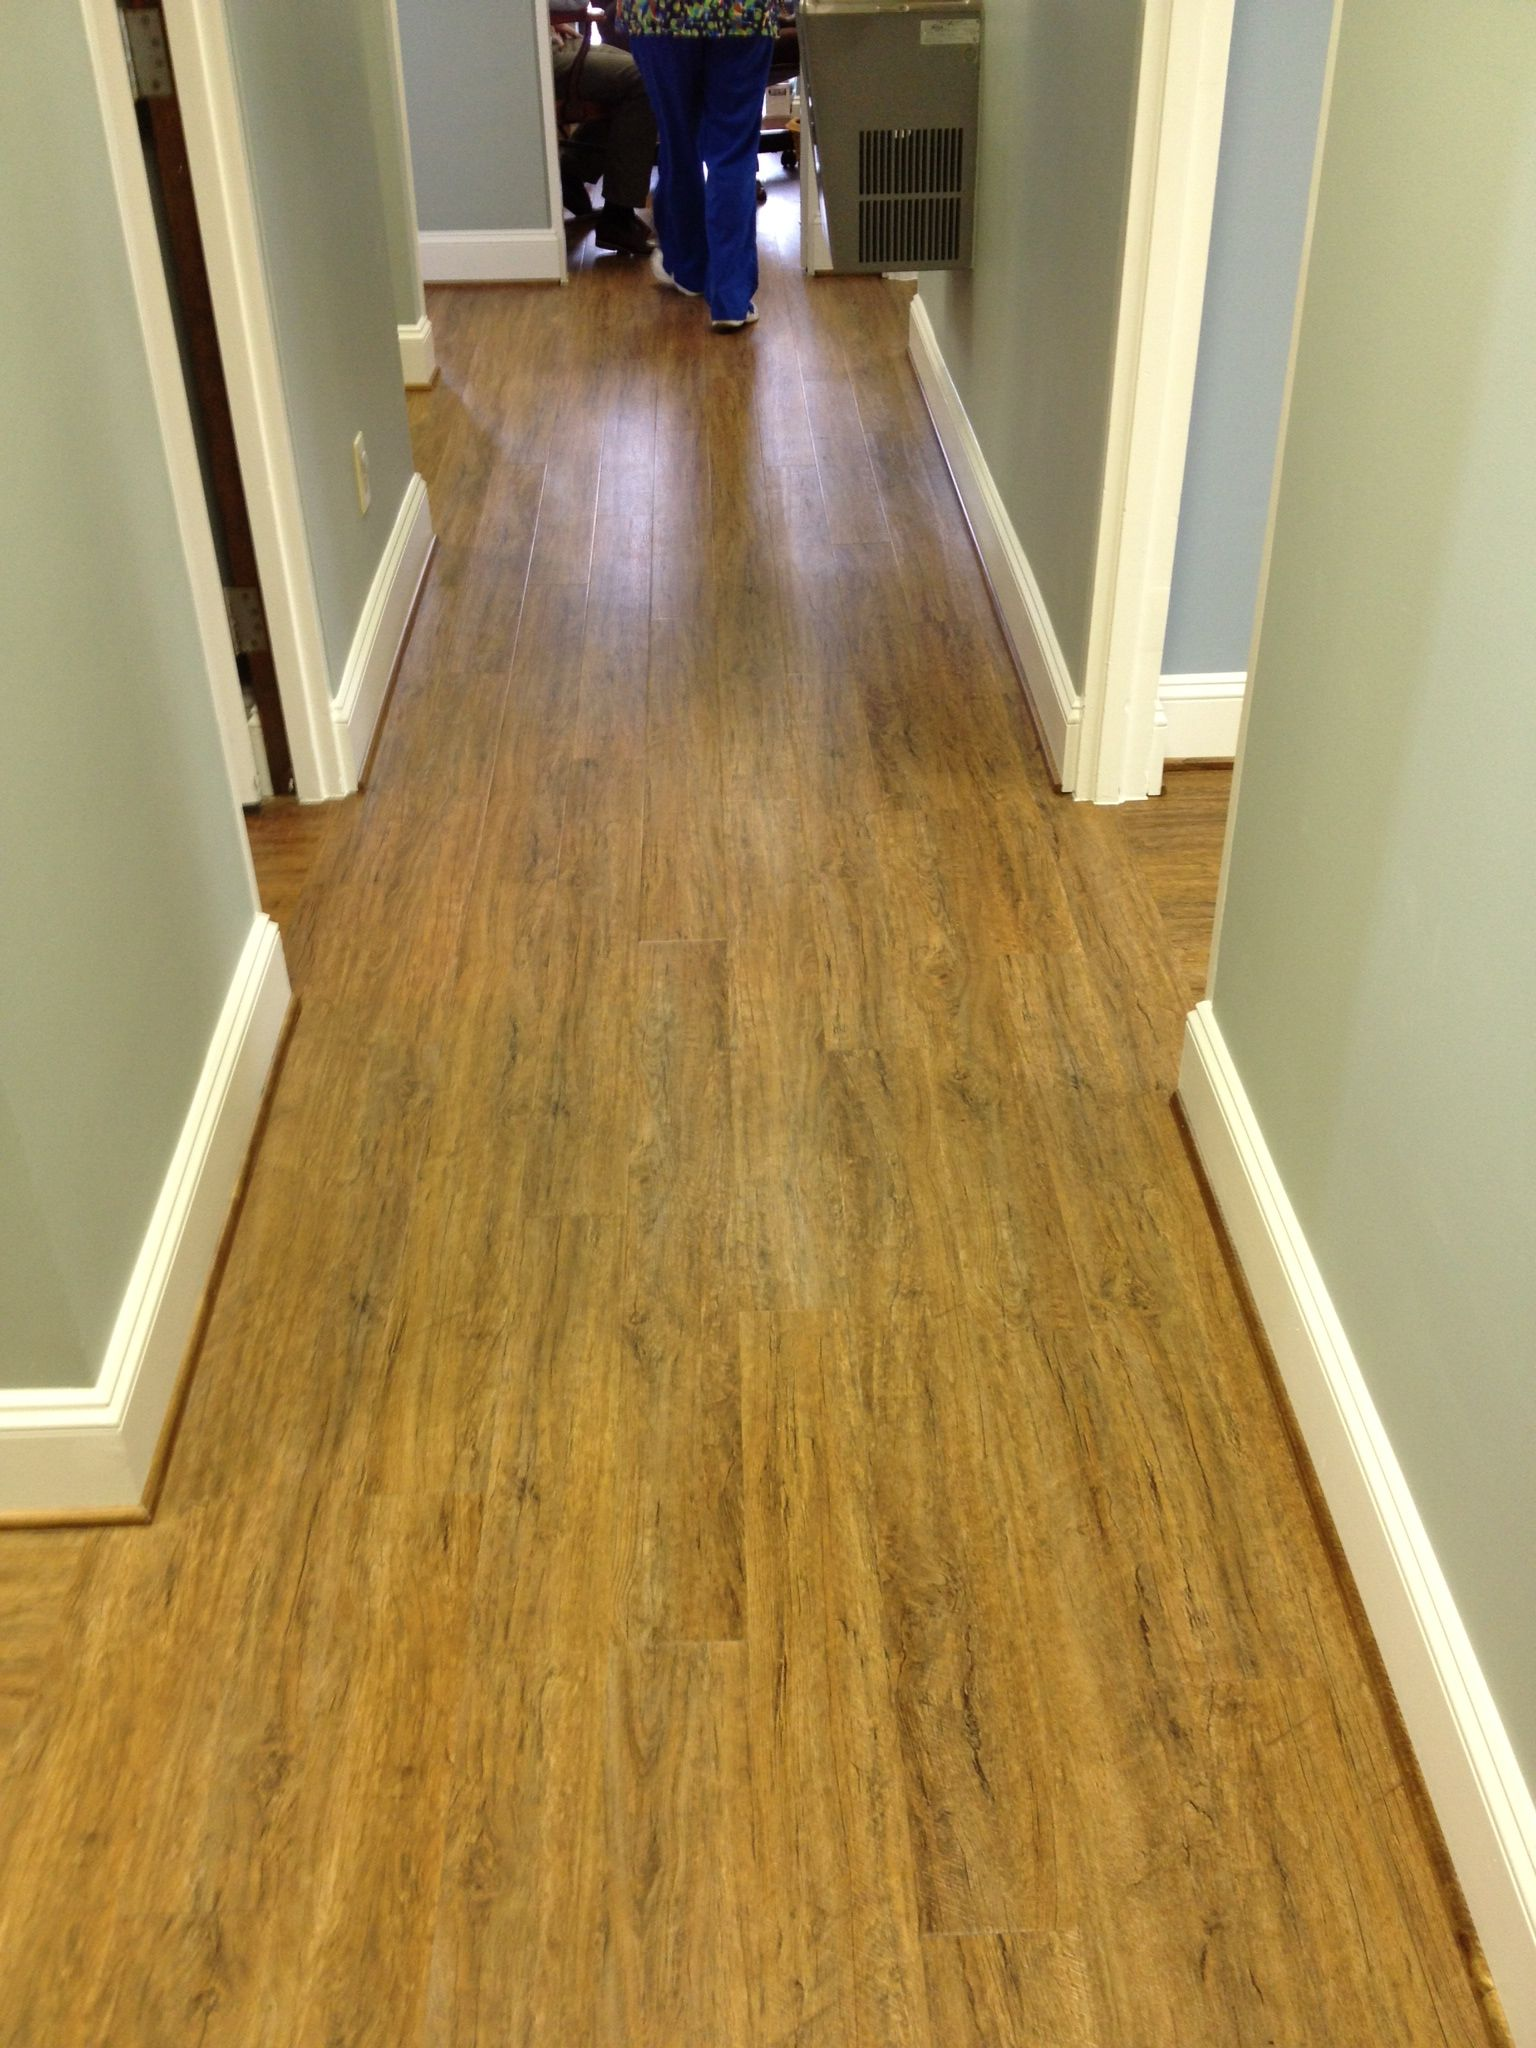 Smooth Sterile Floor For Medical Office Luxury Vinyl PlankVinyl